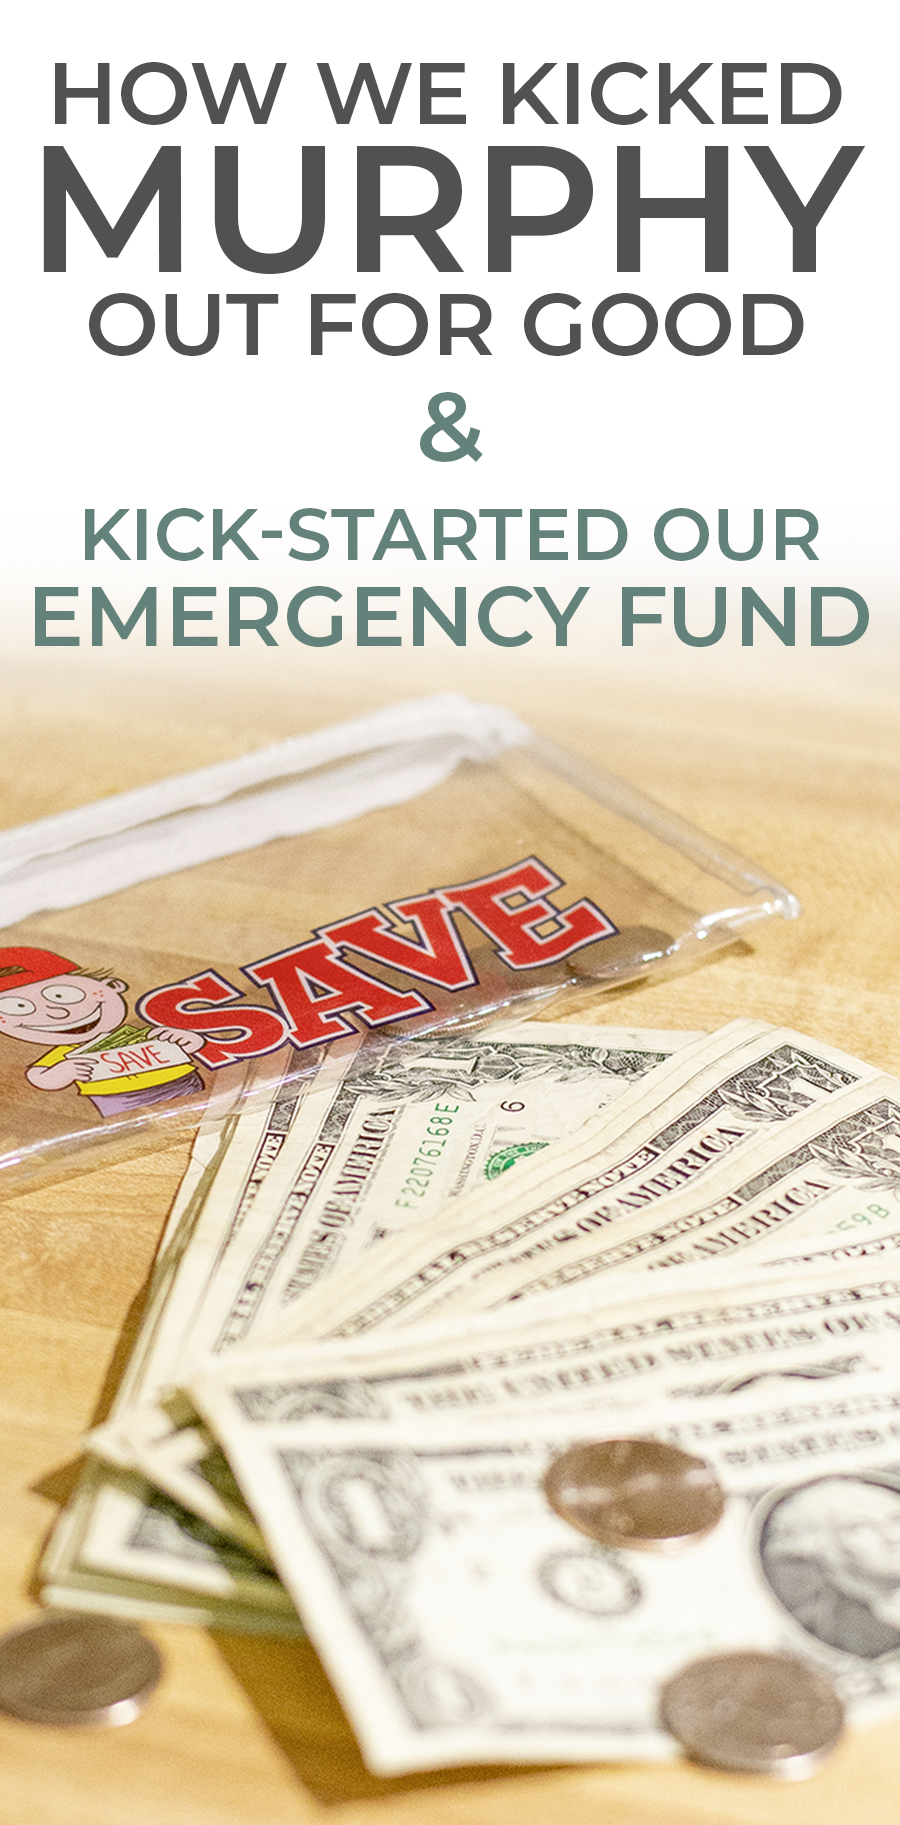 How We Kicked Murphy Out for Good and Kick-Started Our Emergency Fund